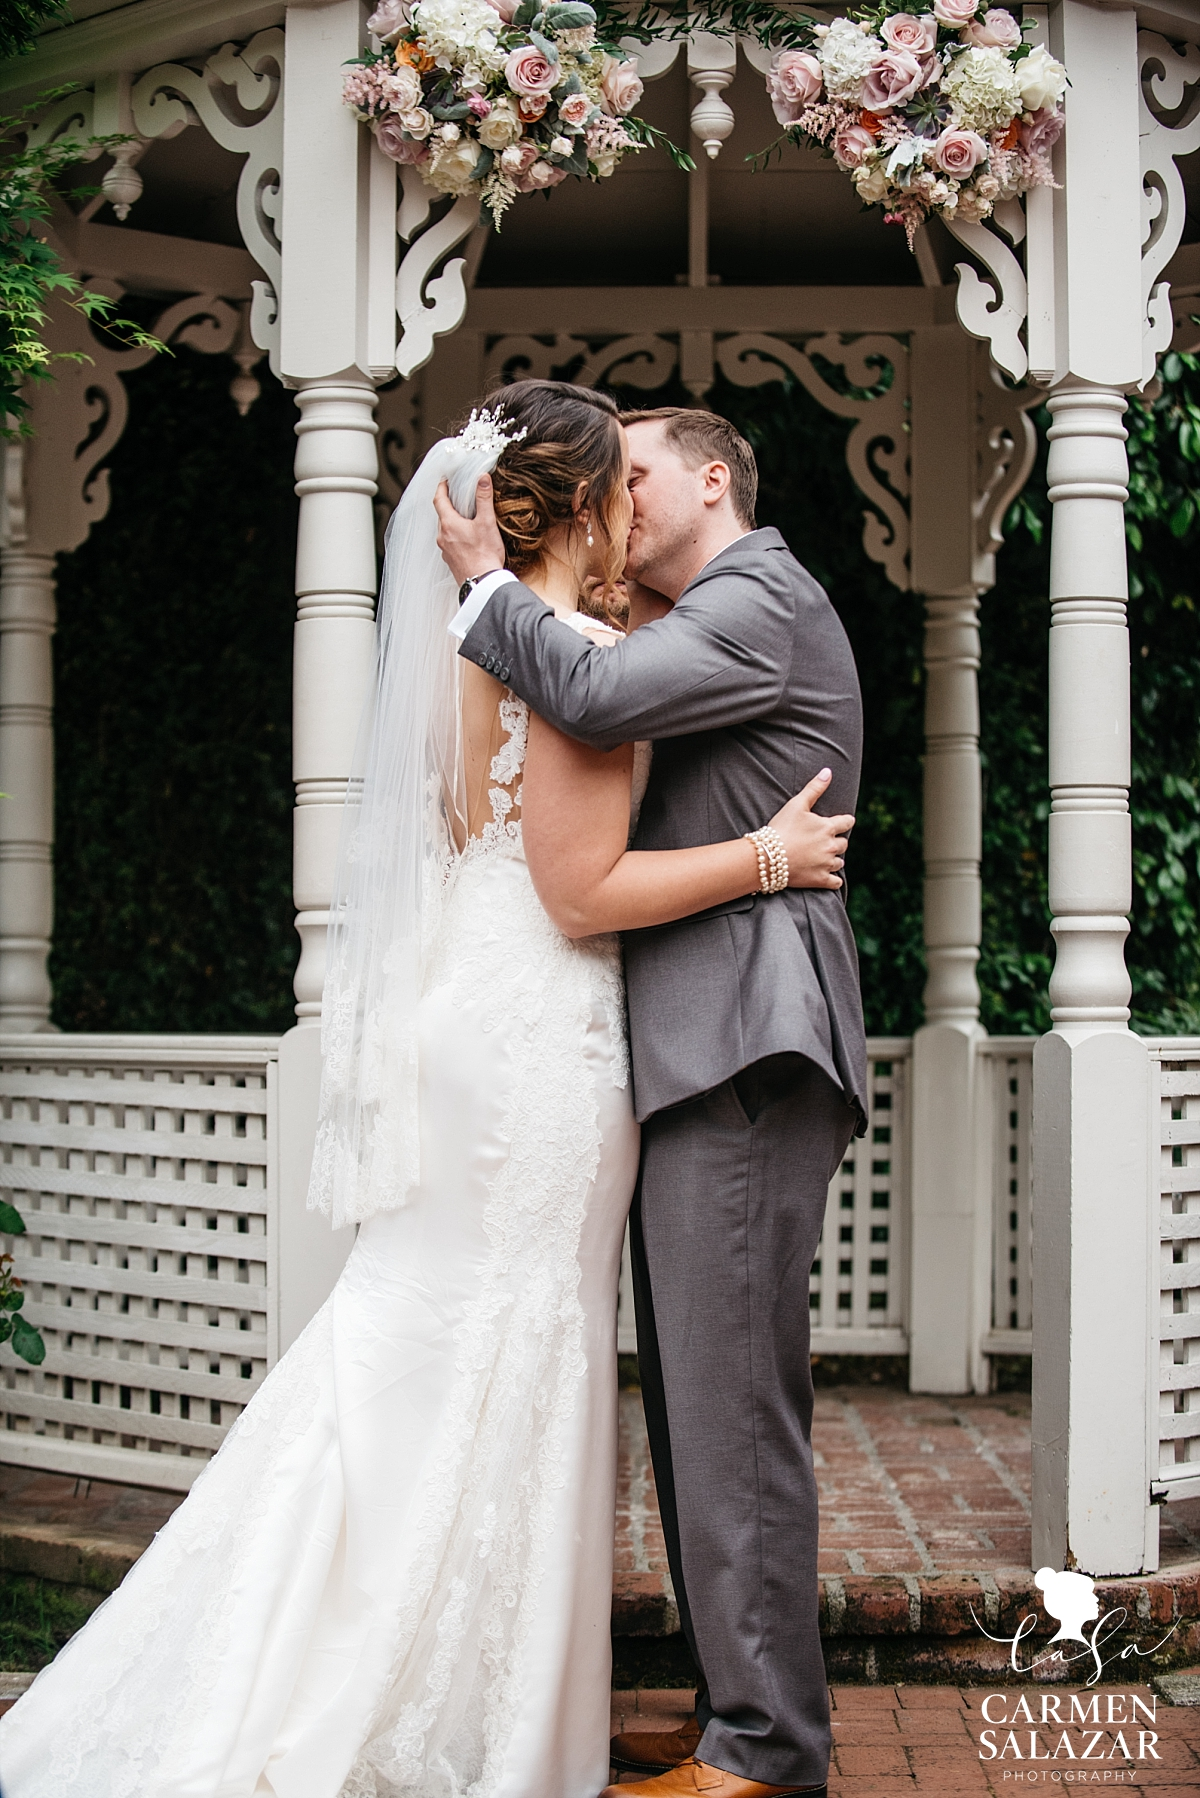 First kiss at Vizcaya outdoor wedding - Carmen Salazar